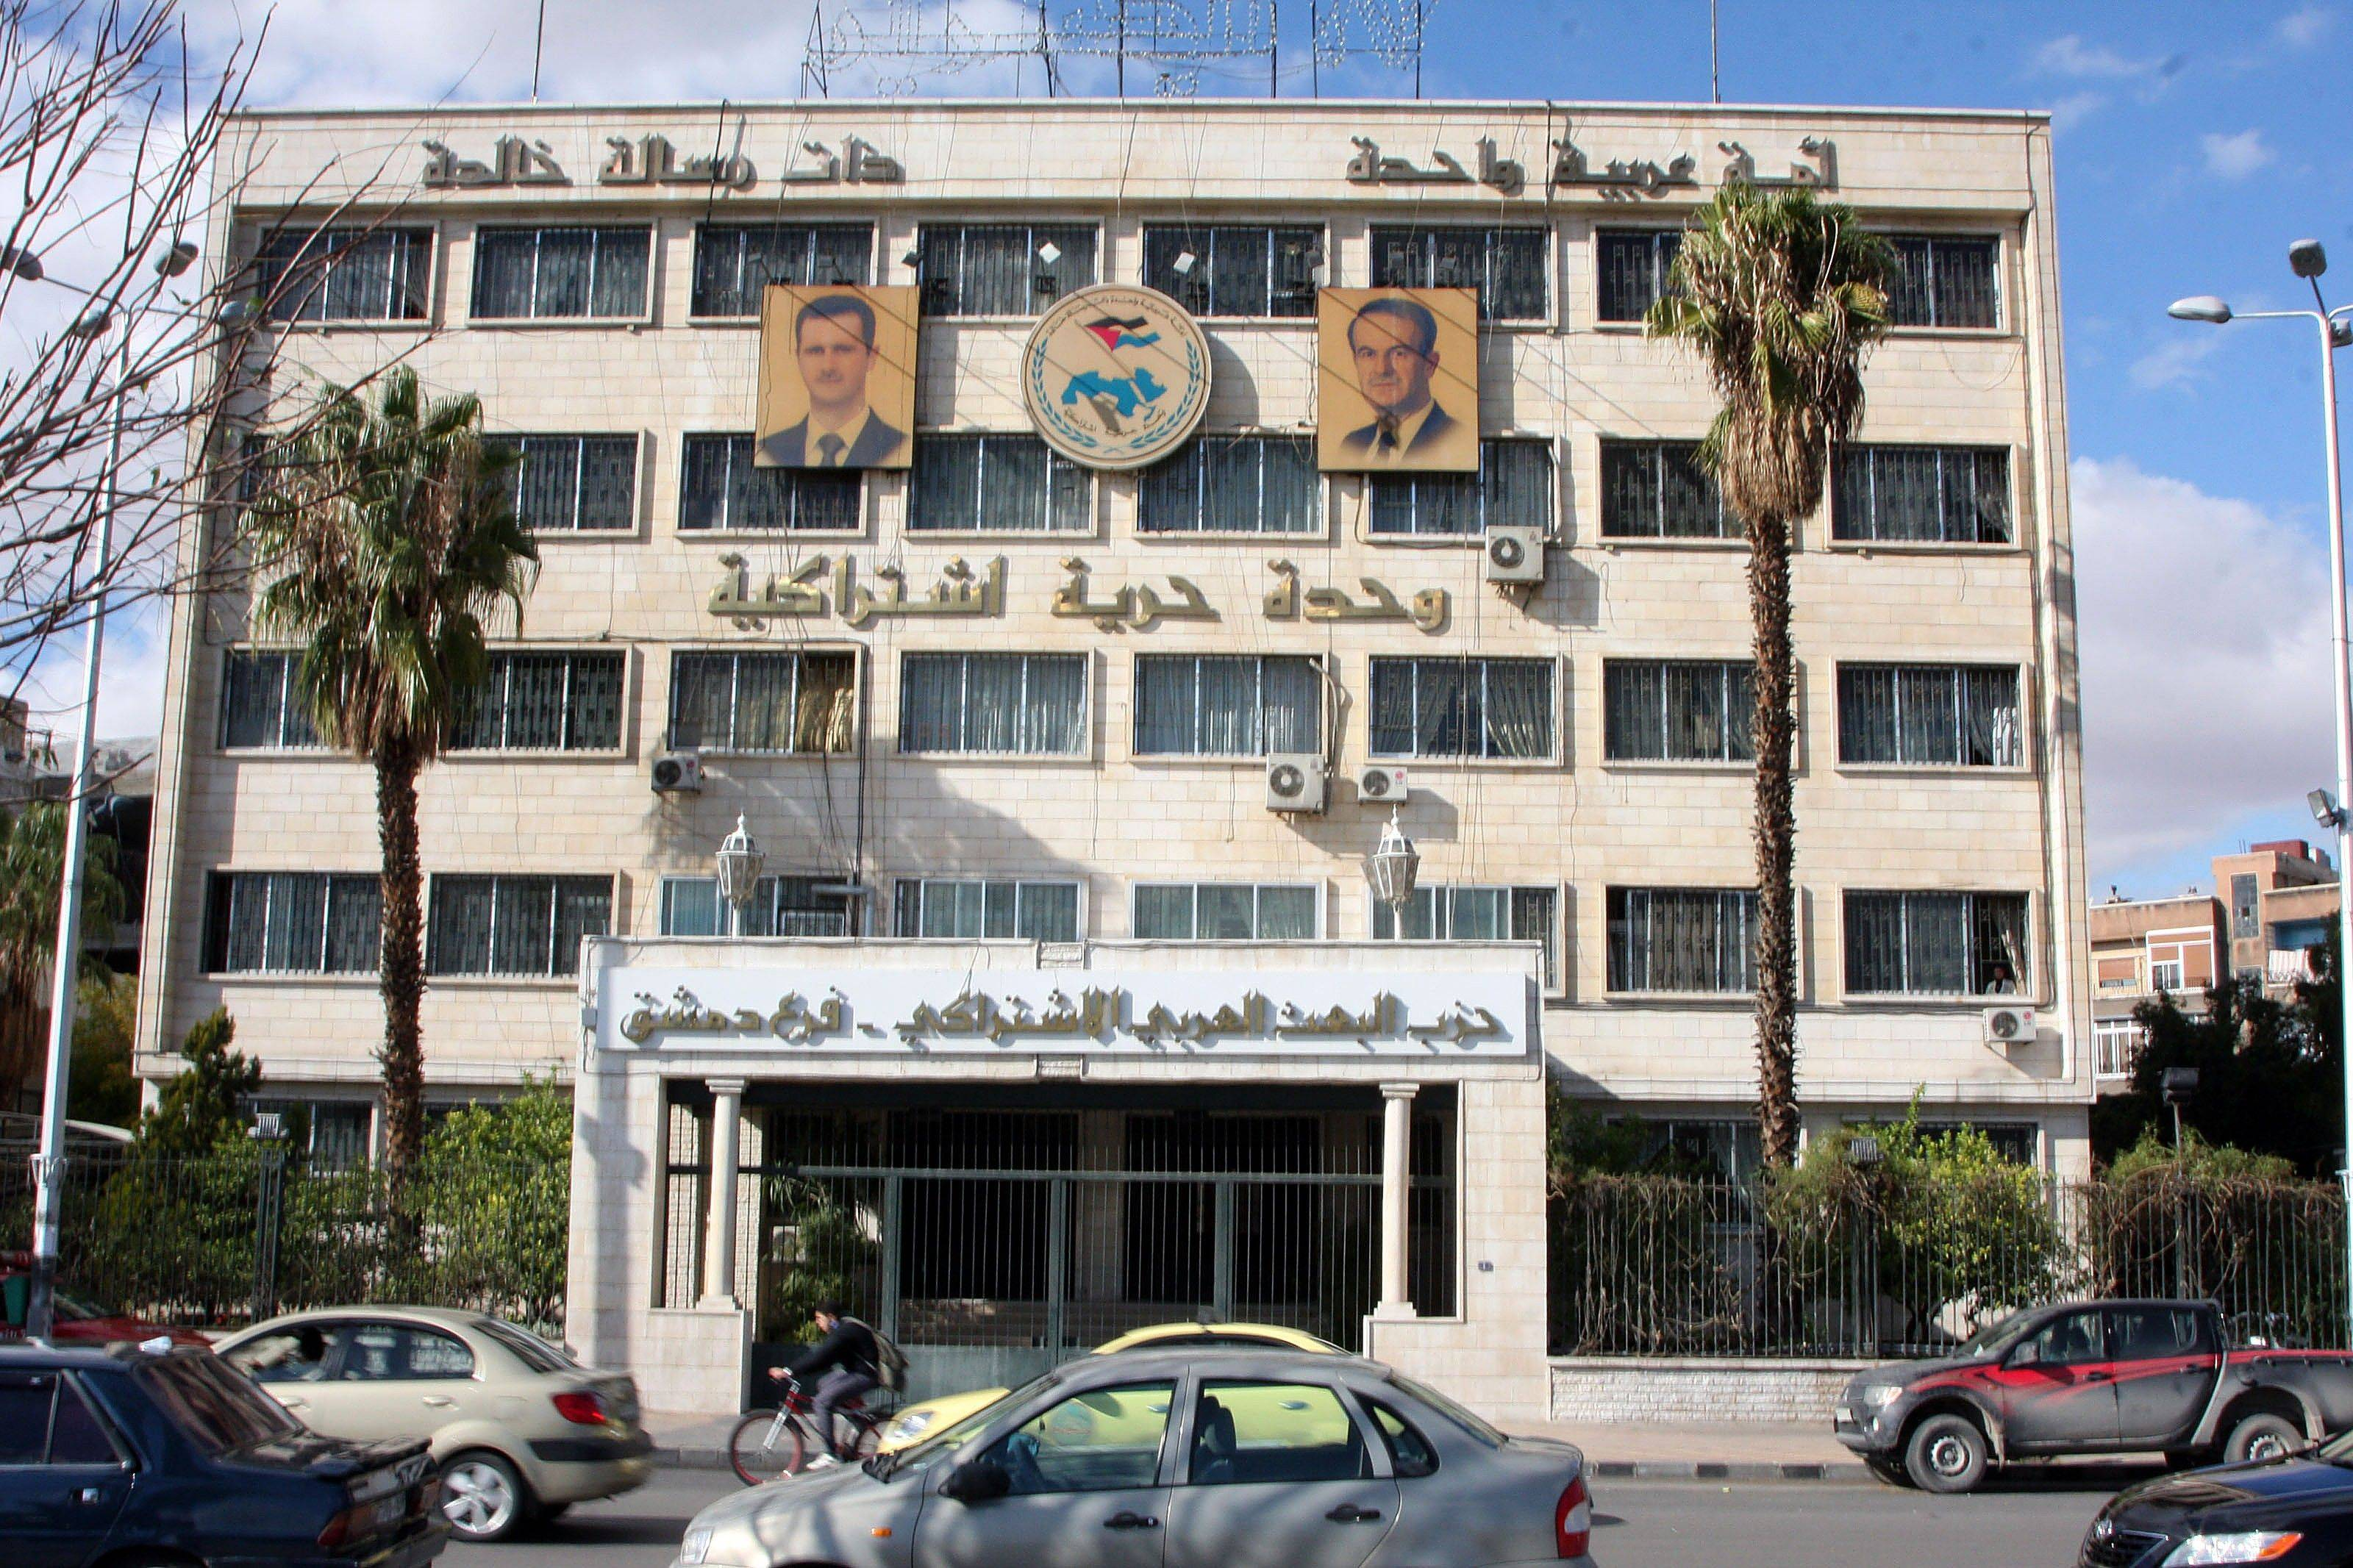 A general view of the ruling Baath party headquarters, in Damascus, Syria, Sunday Nov. 20, 2011. Residents in the Syrian capital awoke to two loud explosions Sunday amid reports from activists that the Damascus headquarters of the ruling Baath party had been hit by several rocket-propelled grenades.